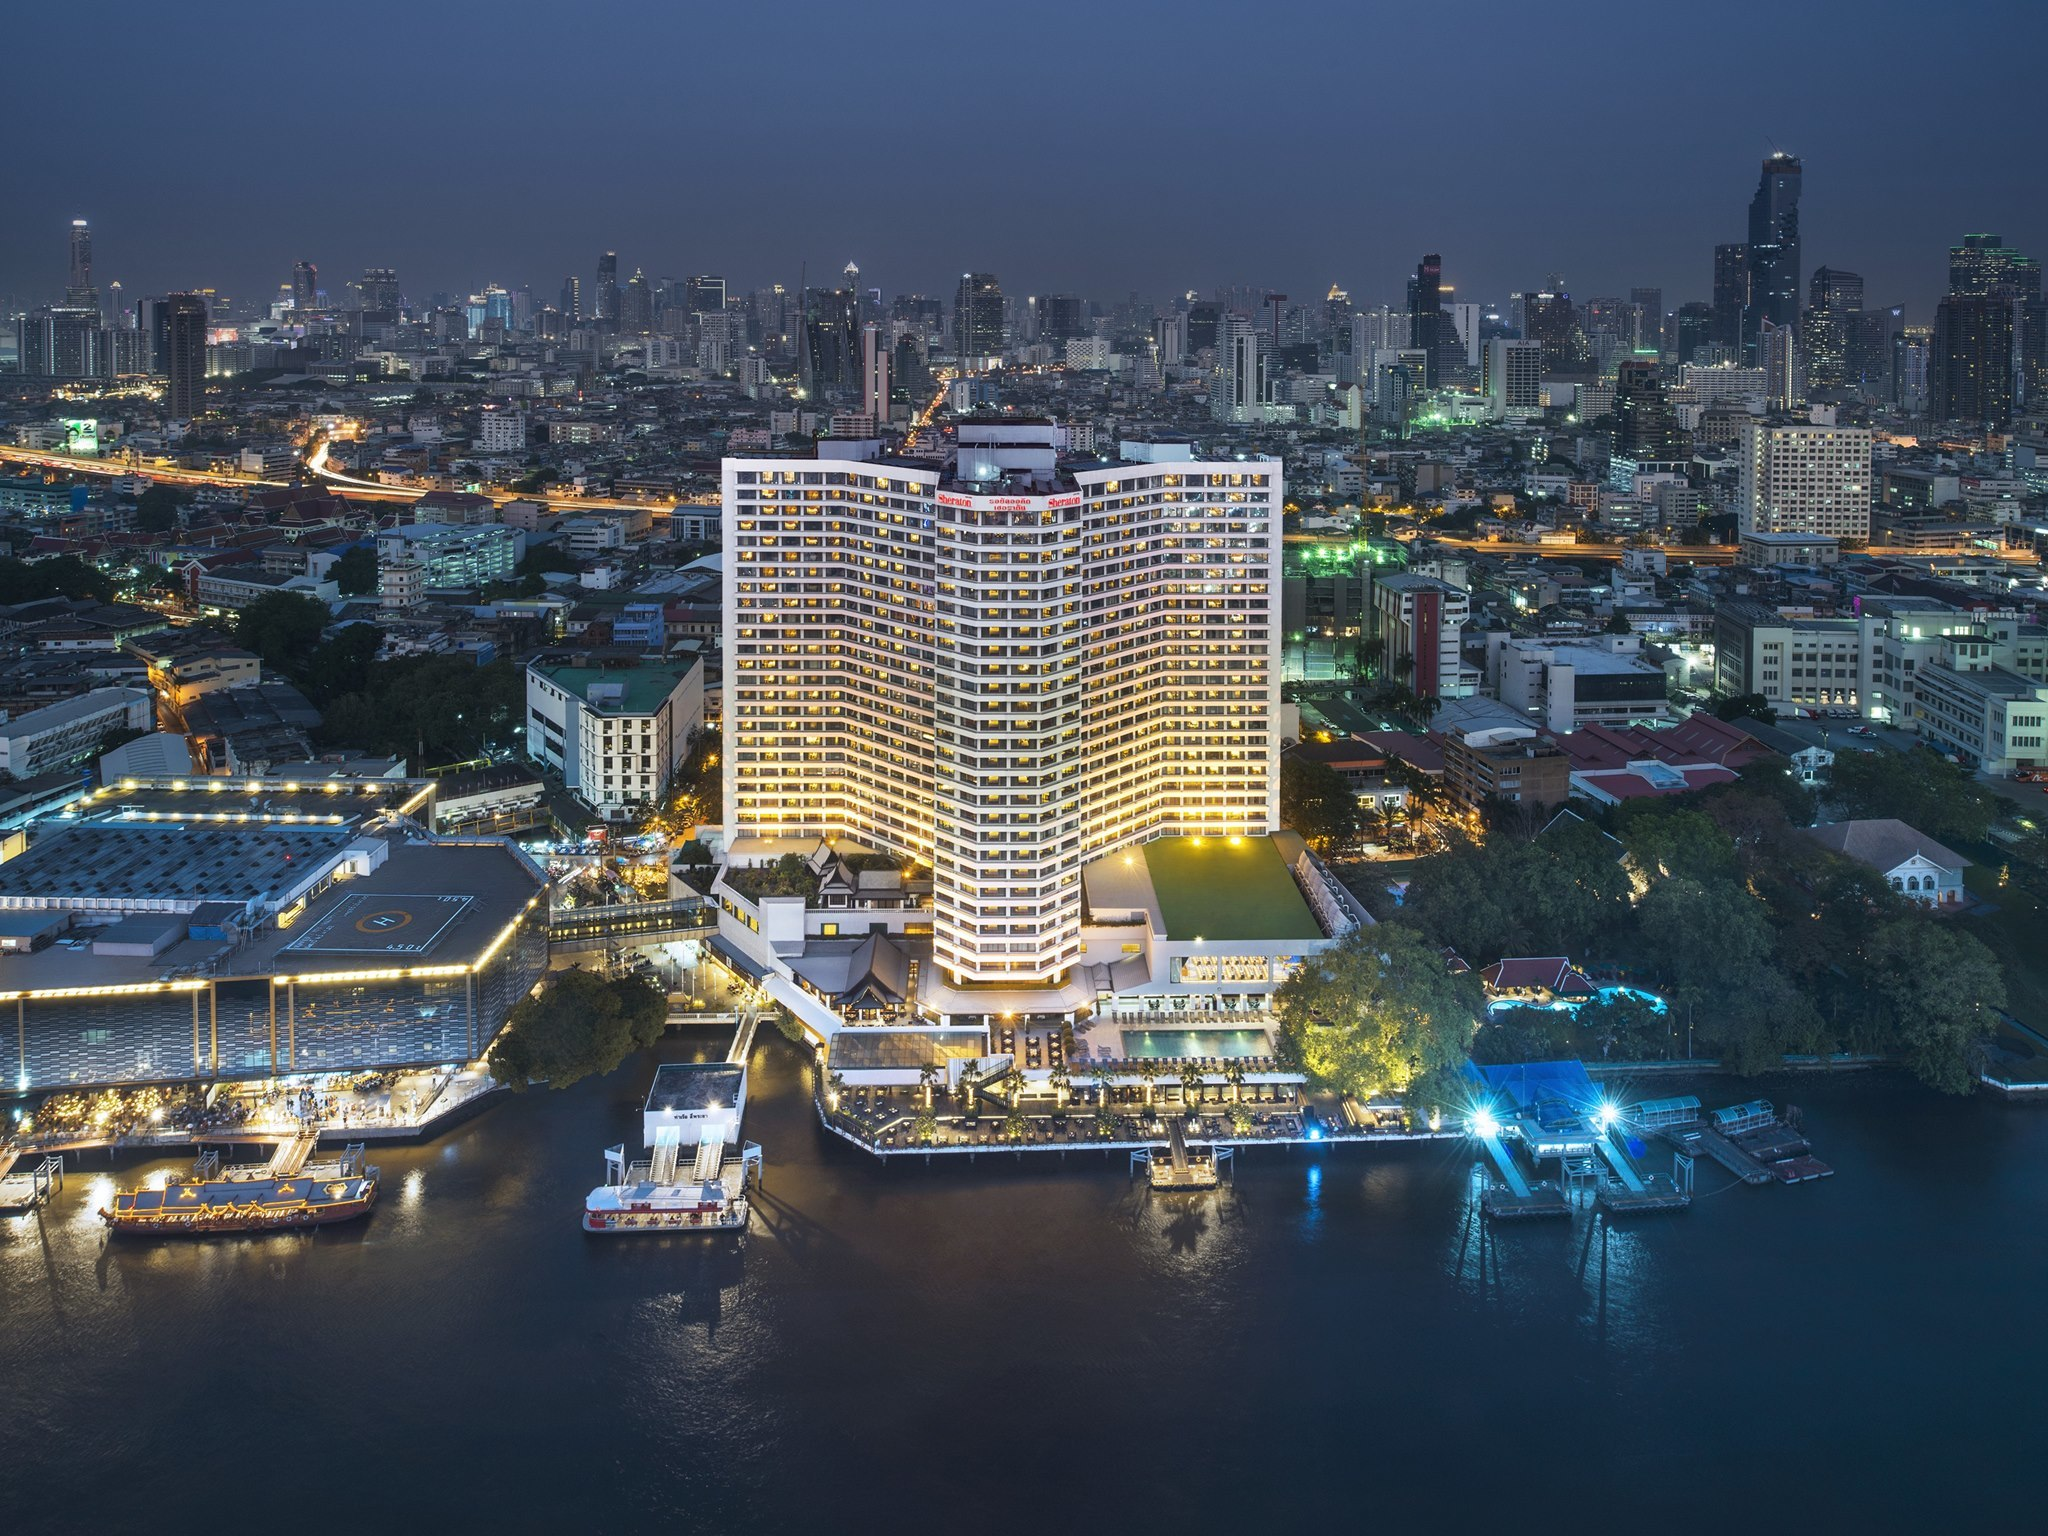 Royal Orchid Sheraton Hotel and Towers